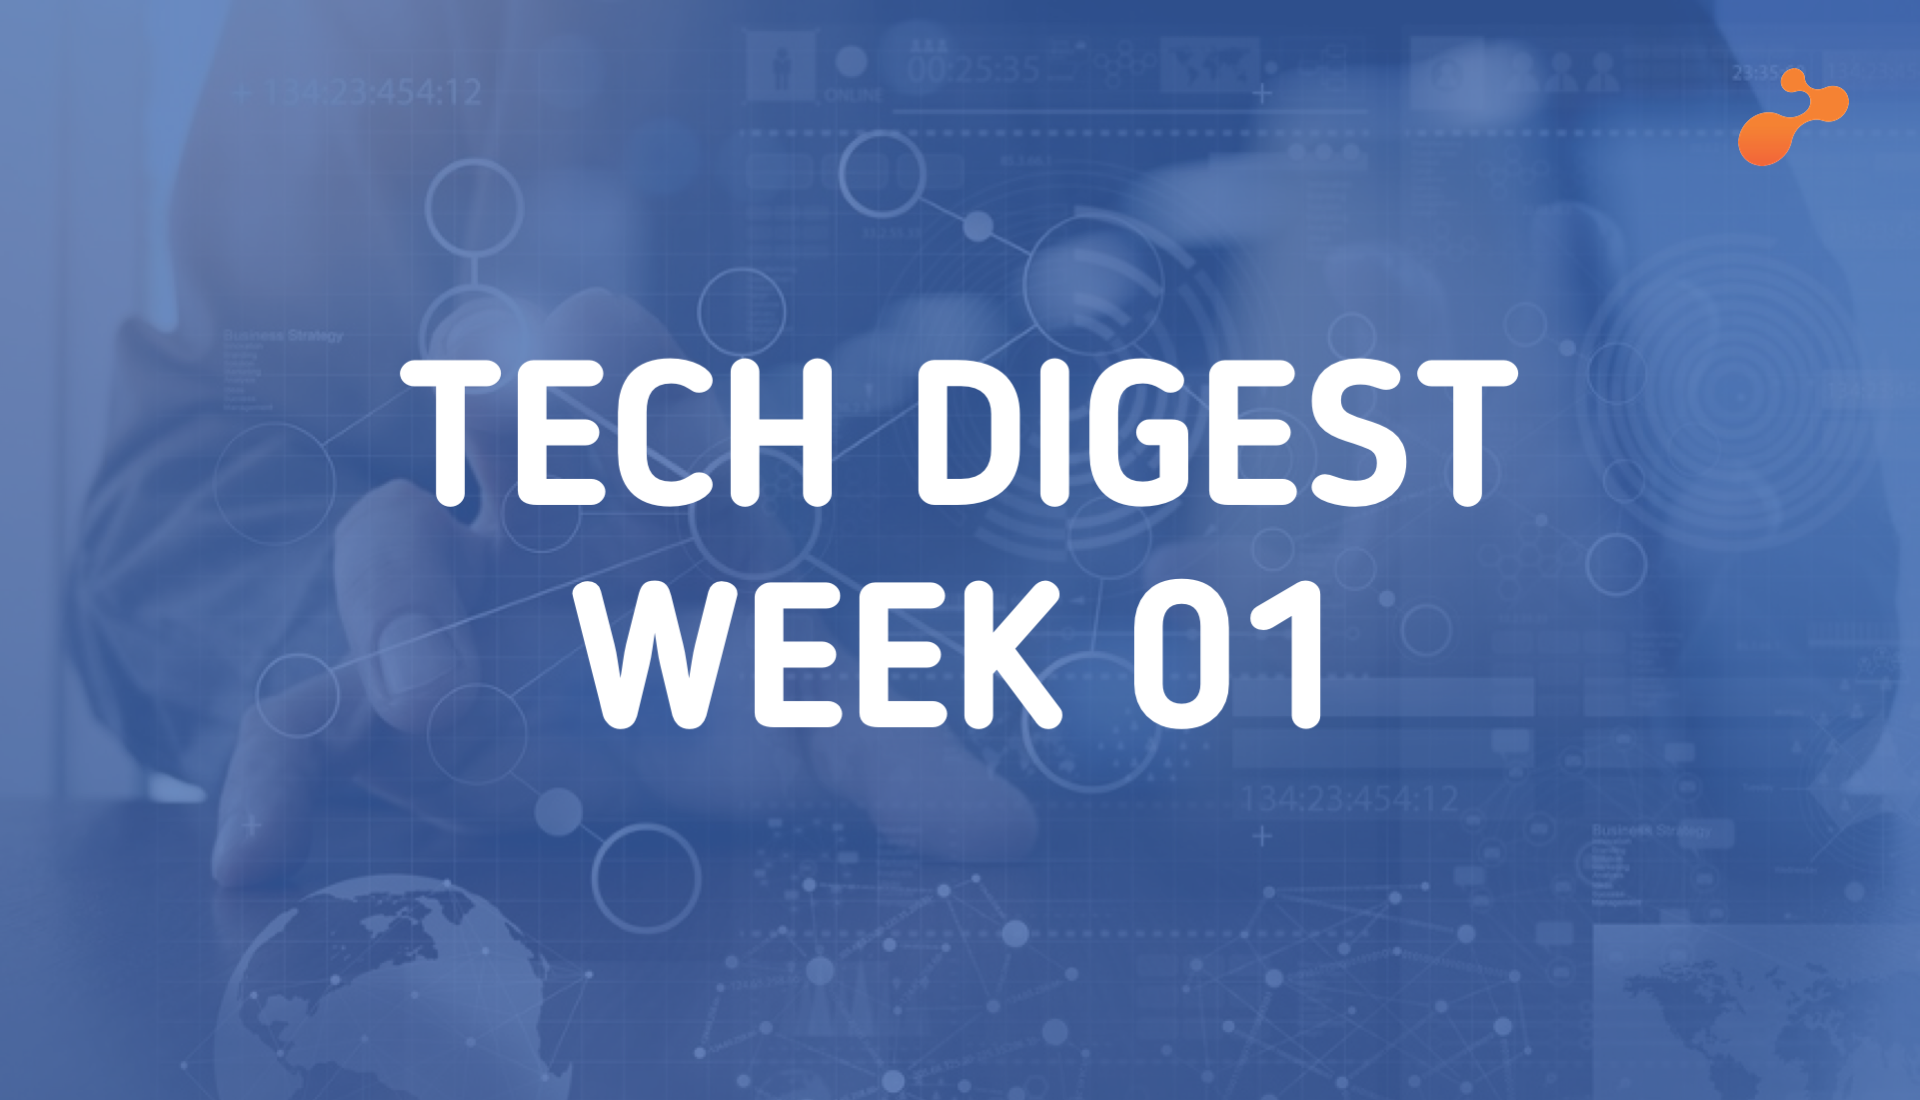 Tech stories handpicked for you- Week 01, 2019